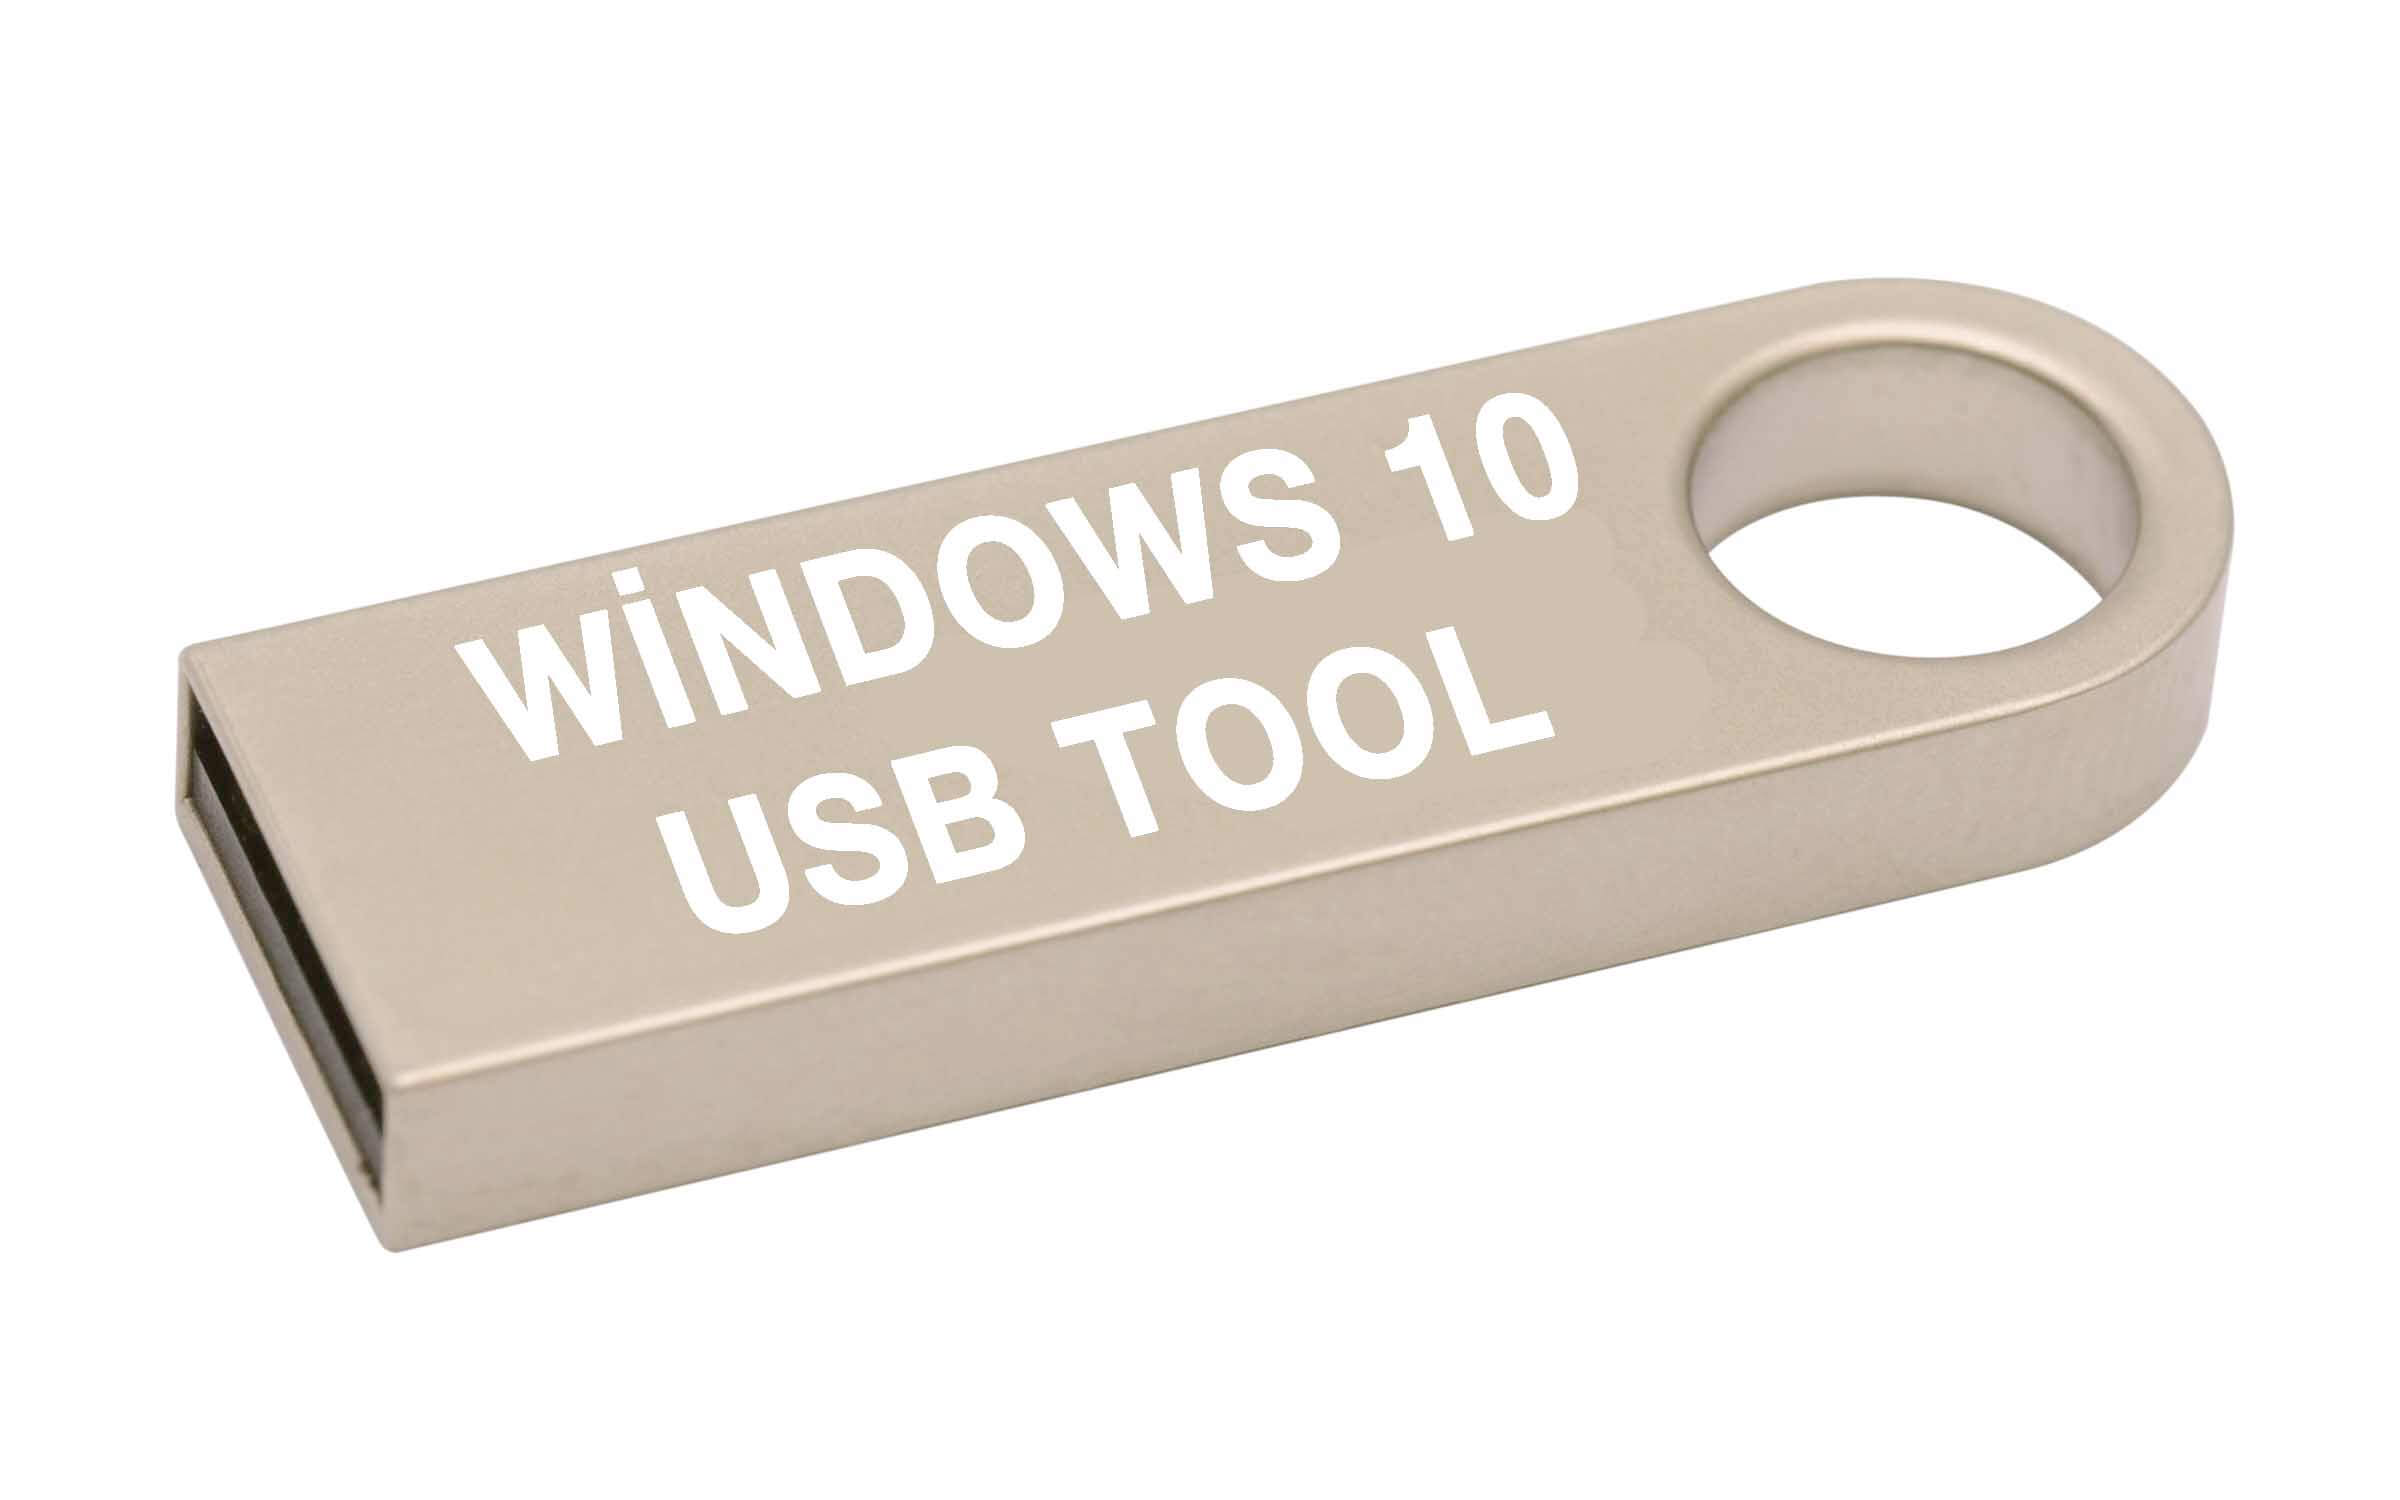 USB tool hazırlama Windows 10 USB Tool Windows 10 USB Tool Hazırlama usb tool